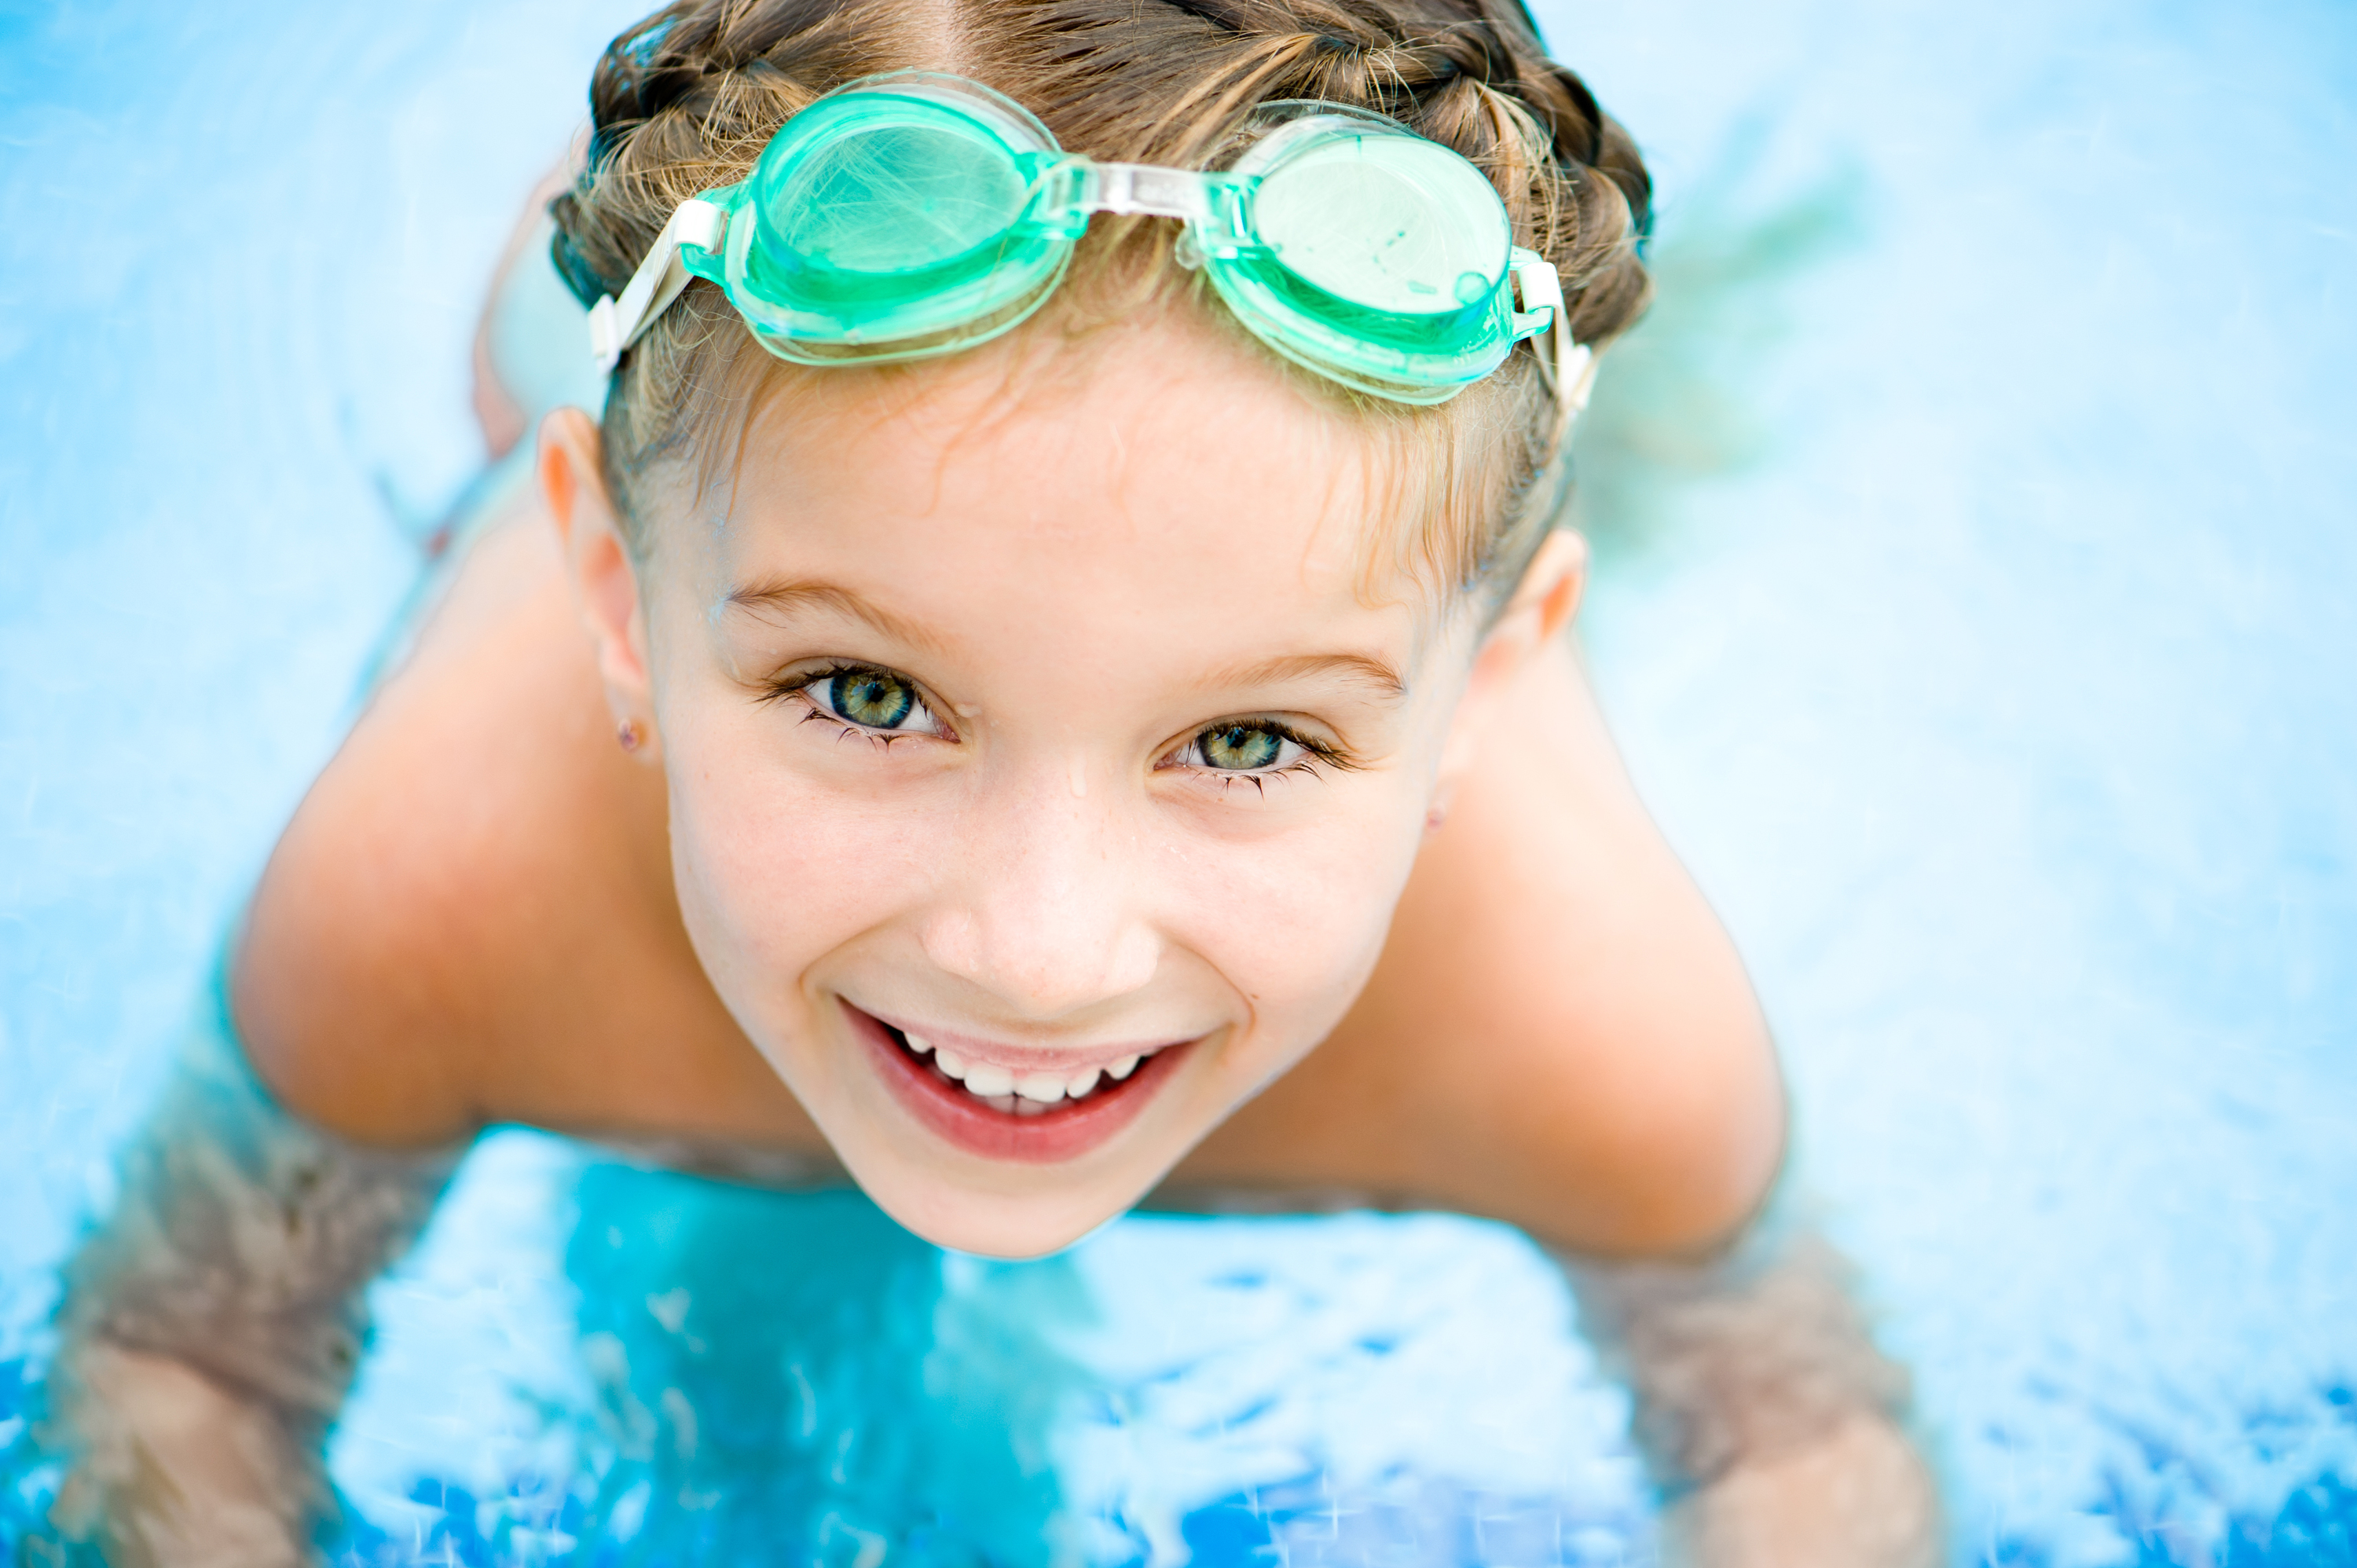 Free swim lessons for kids at YMCA! Here's the scoop.